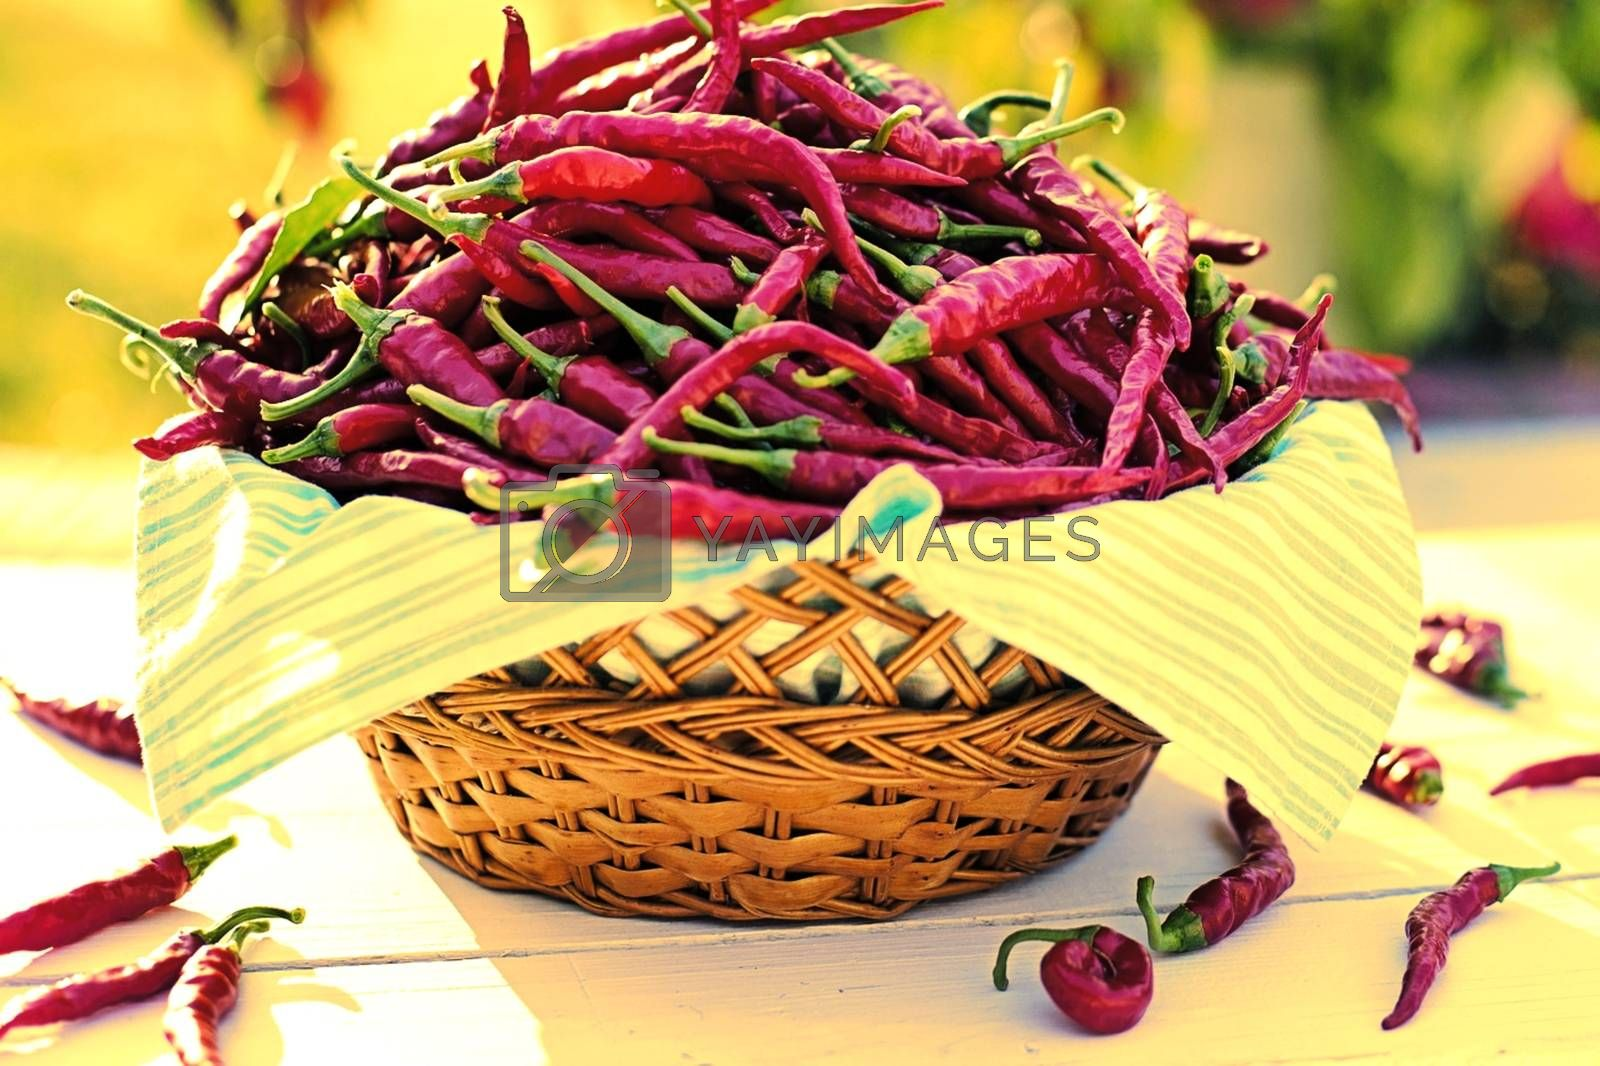 Royalty free image of Chili peppers in wicker basket in the garden by balage941